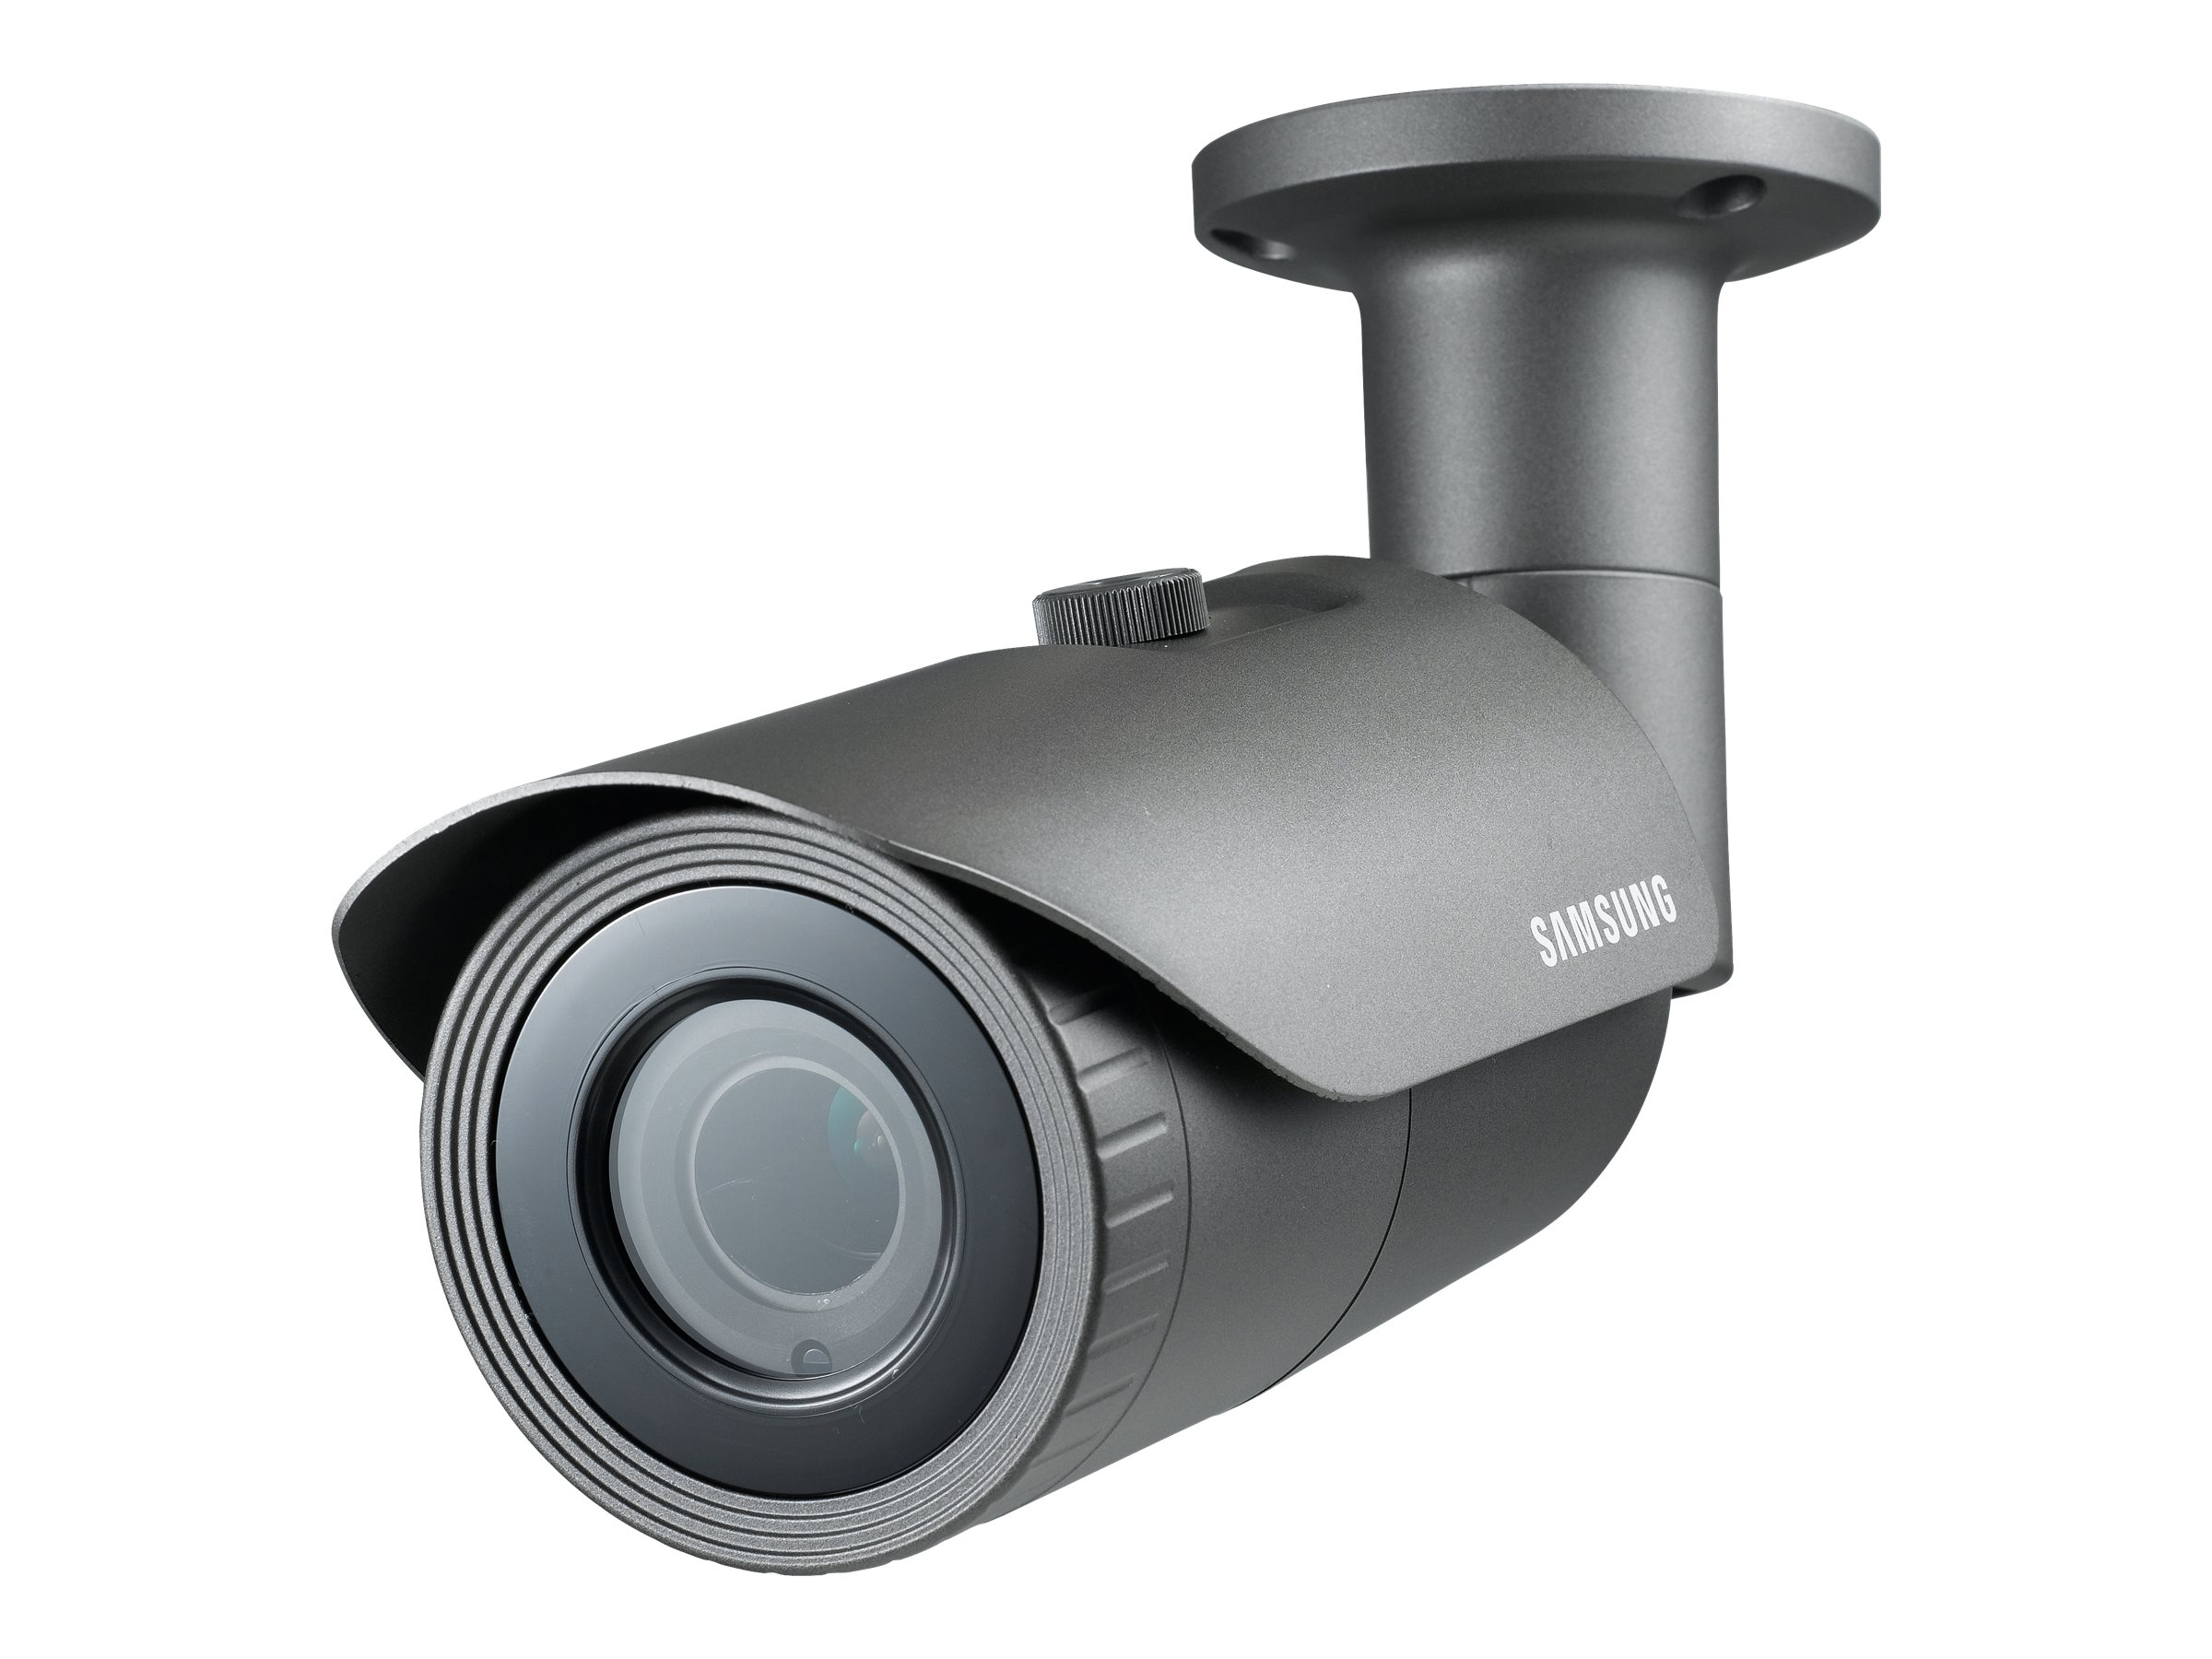 Samsung 1000TVL Premium Resolution Weatherproof IR Camera with 3-10mm Lens, SCO-5083R